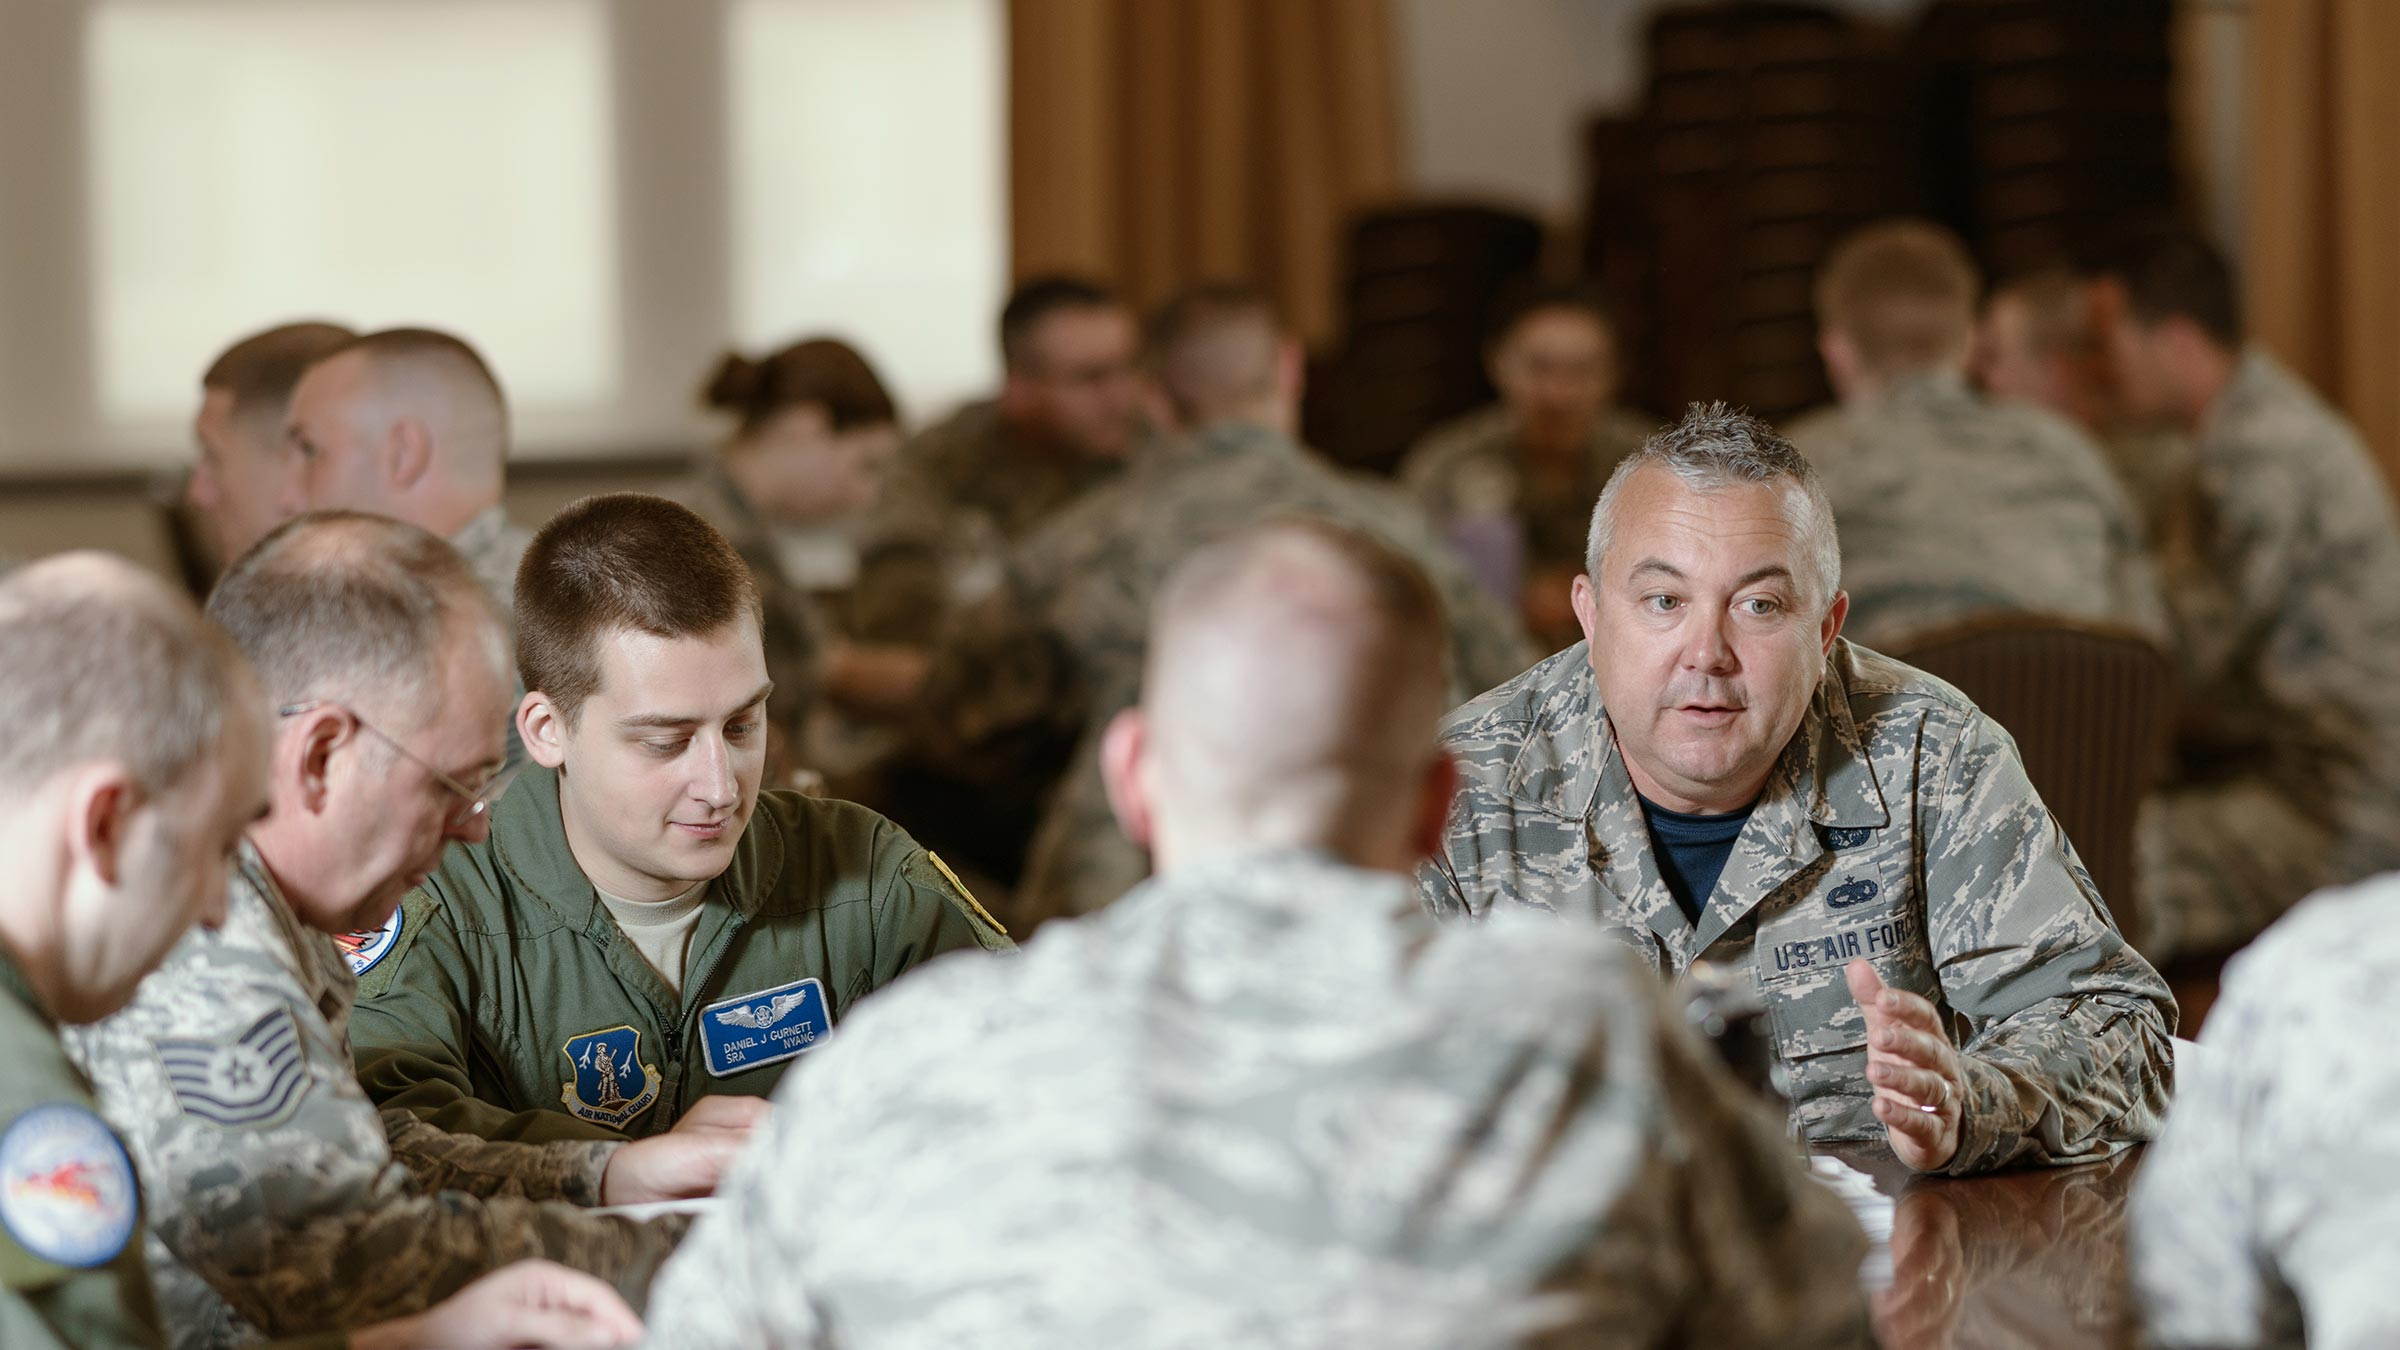 Service members discuss around table